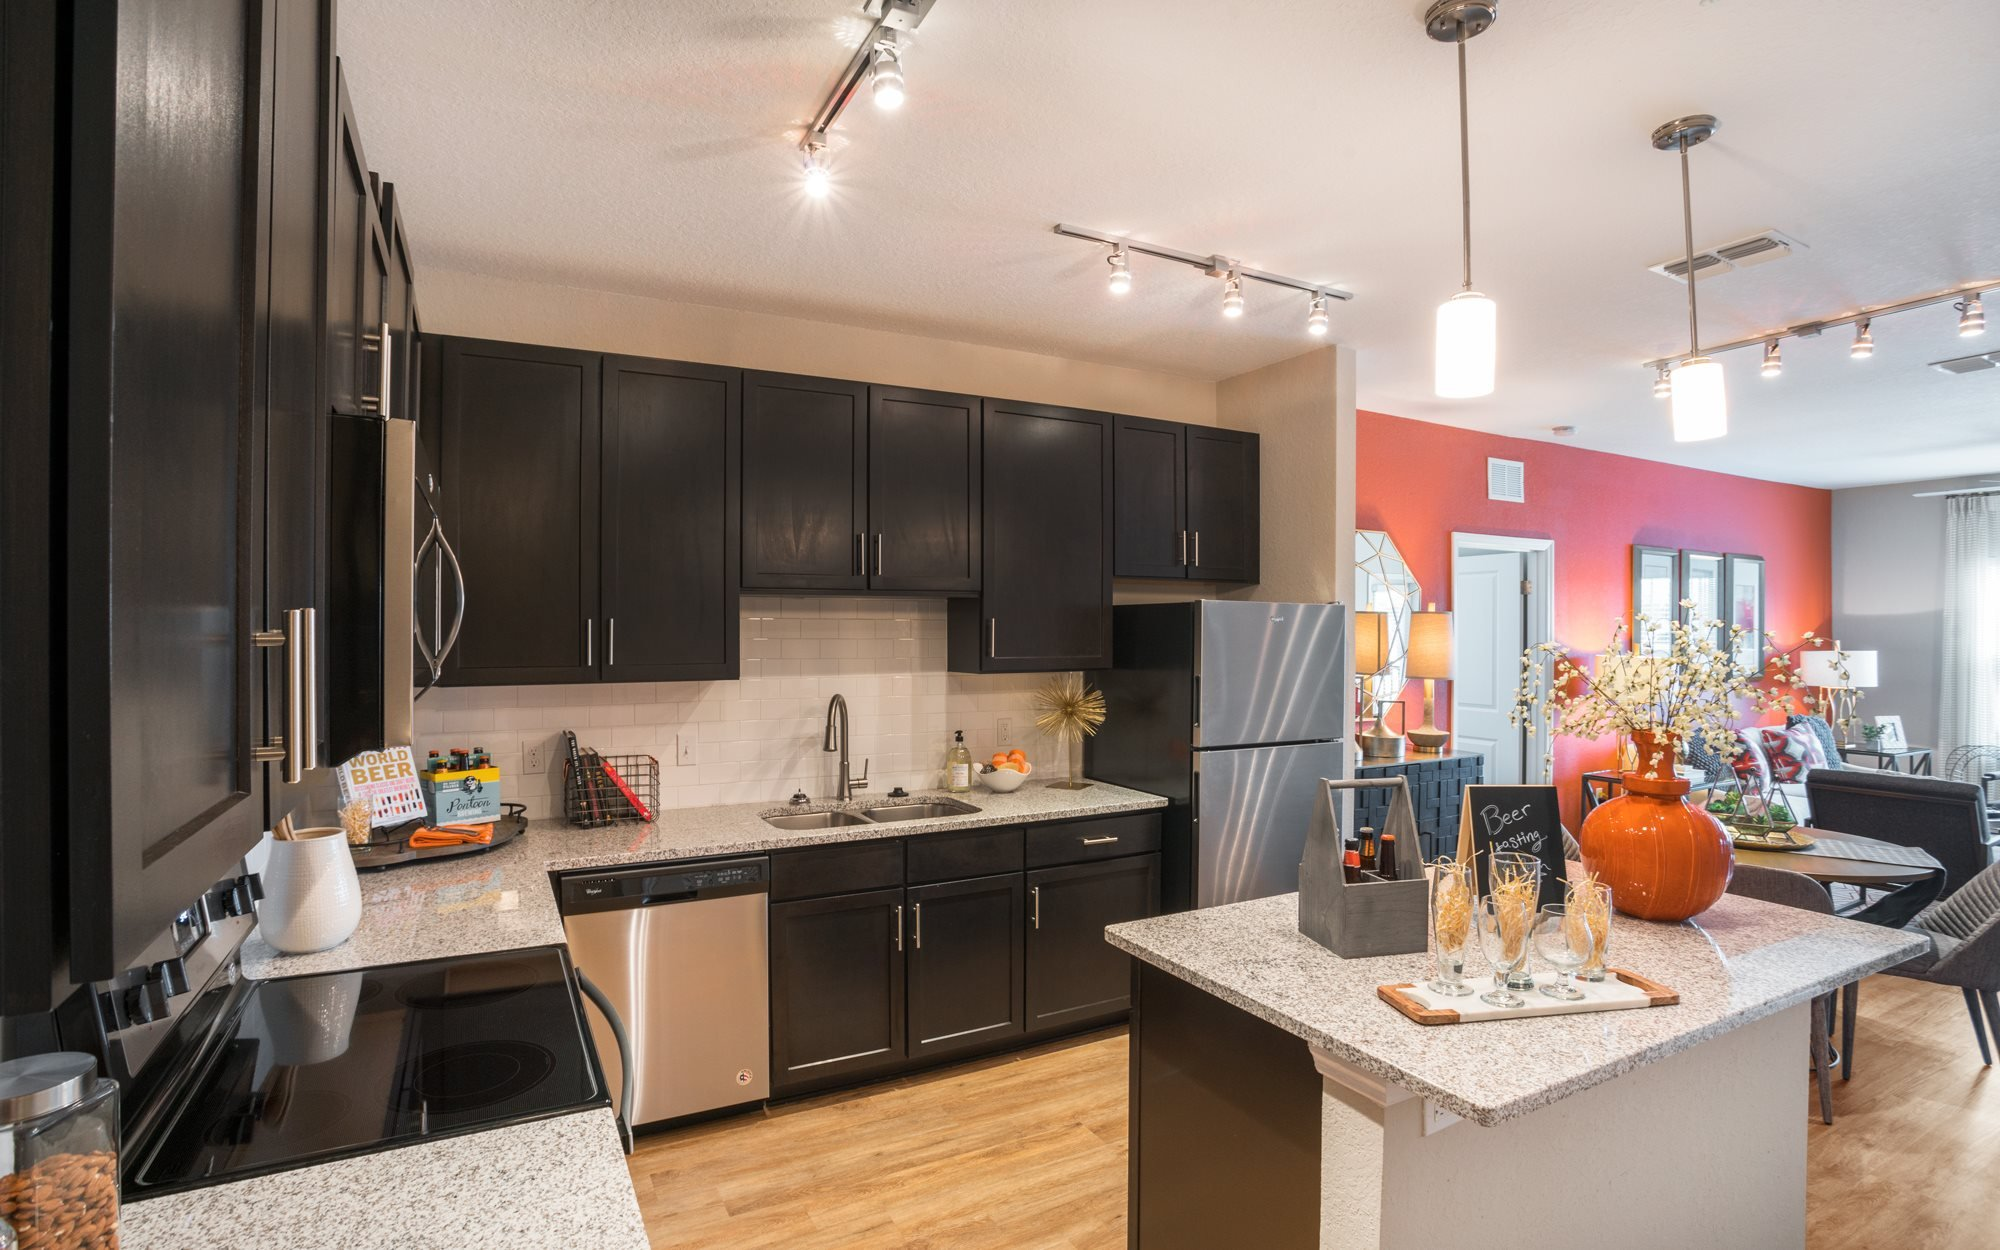 Gourmet Kitchen at Palms at Magnolia Park in Riverview, FL